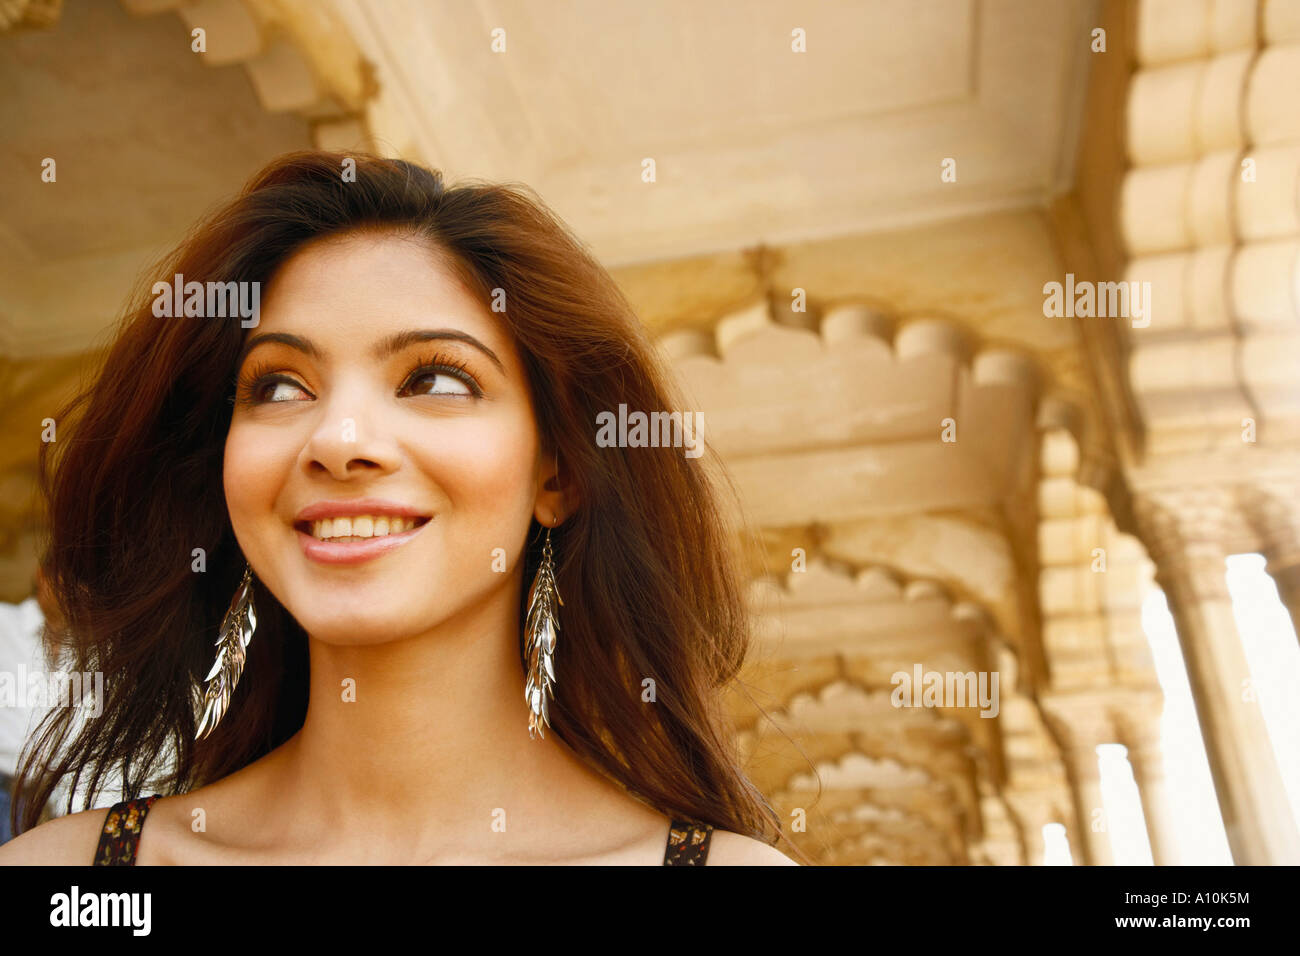 Close-up di una giovane donna sorridente, al Forte di Agra, Agra, Uttar Pradesh, India Immagini Stock